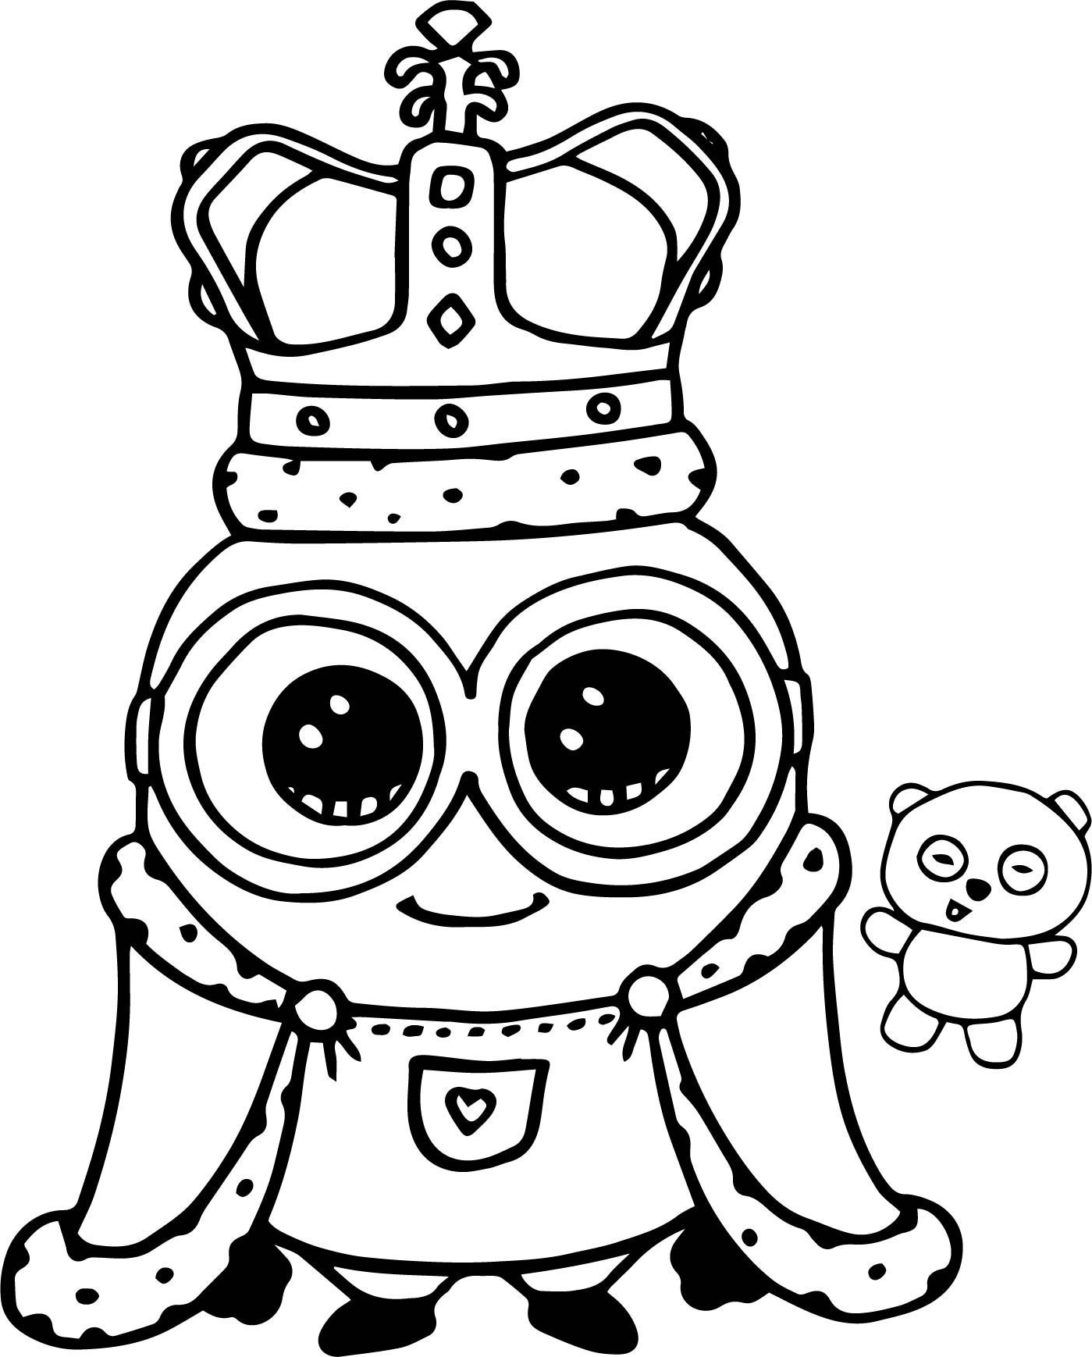 39 Most Out Of This World Coloring Pages Of Minionsble